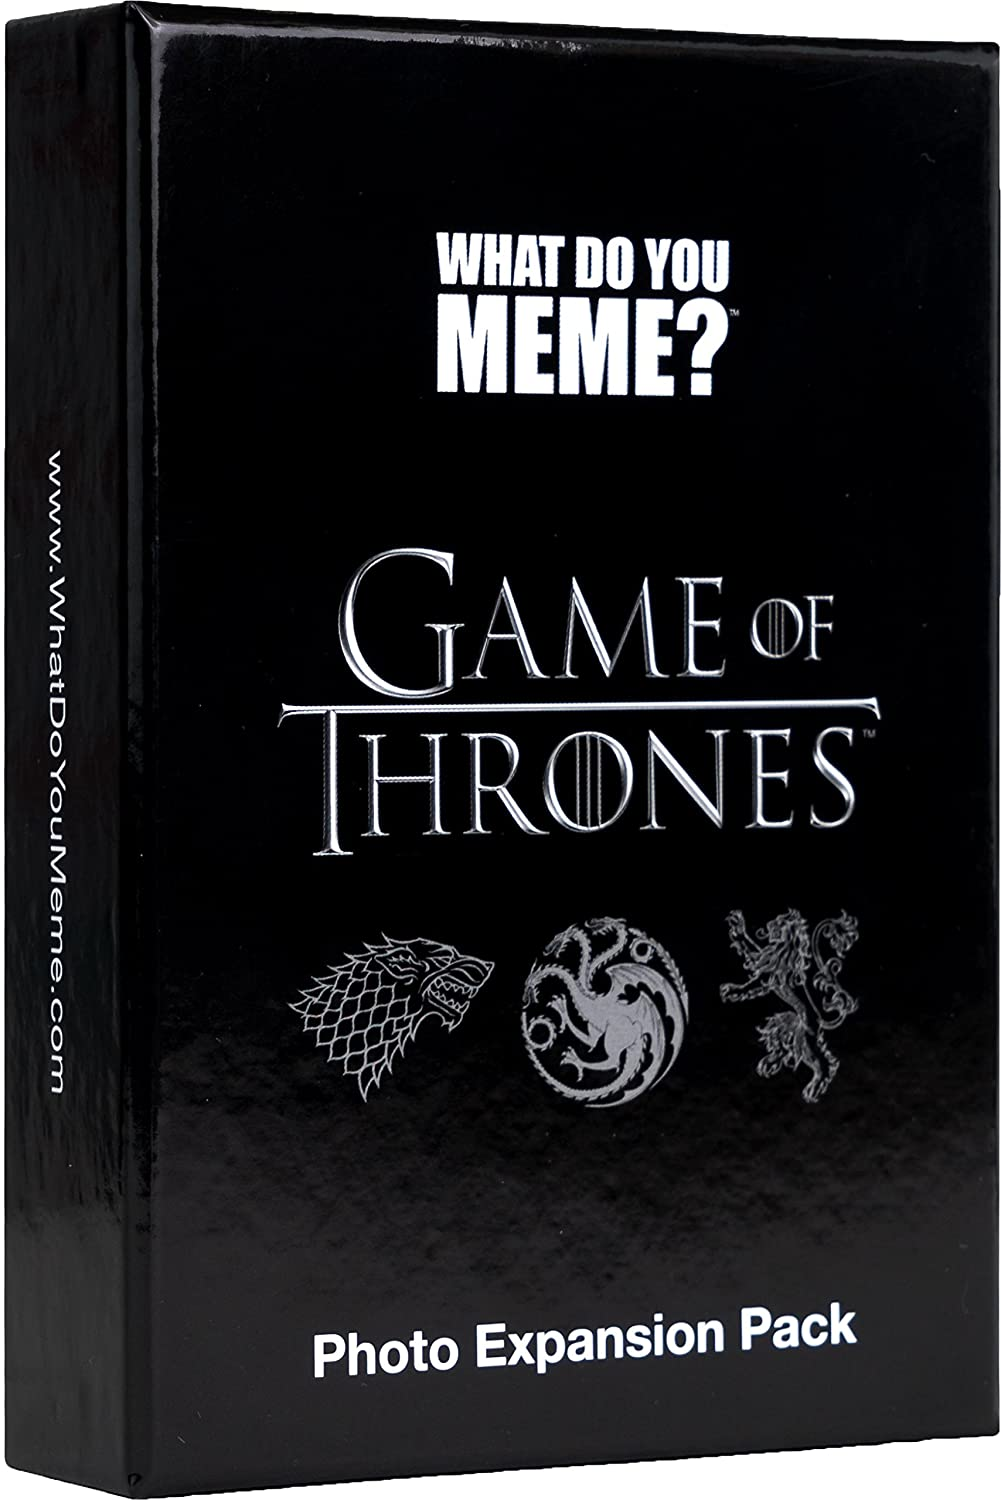 What Do You Meme Game Of Thrones Expansion Pack by What Do You Meme